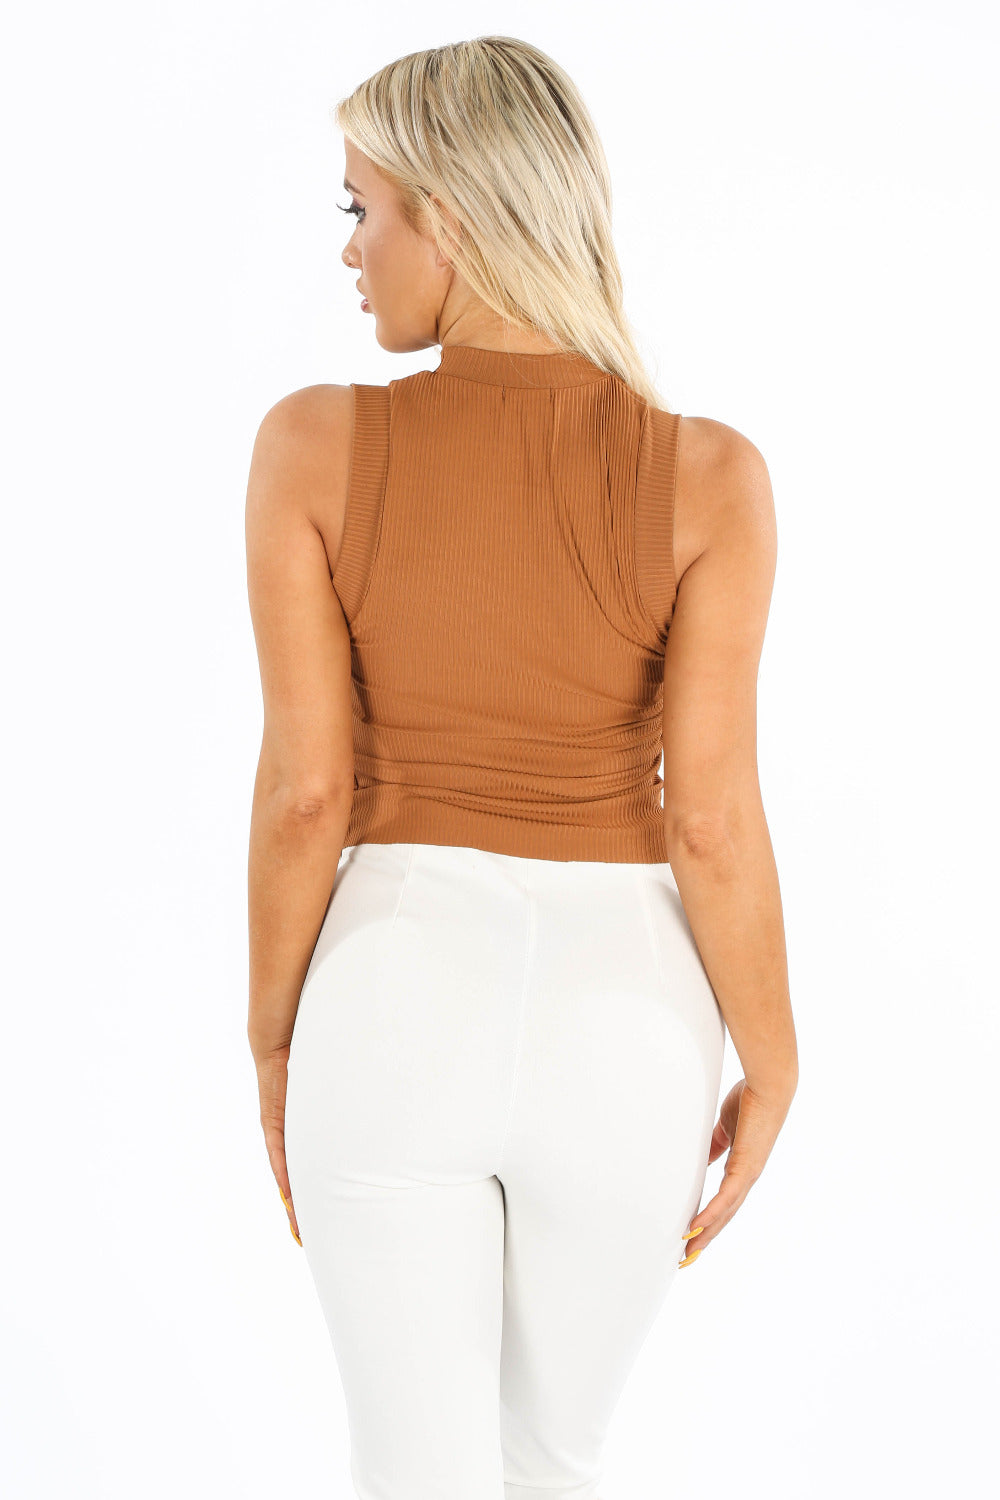 Tan High Neck Ribbed Jersey Top